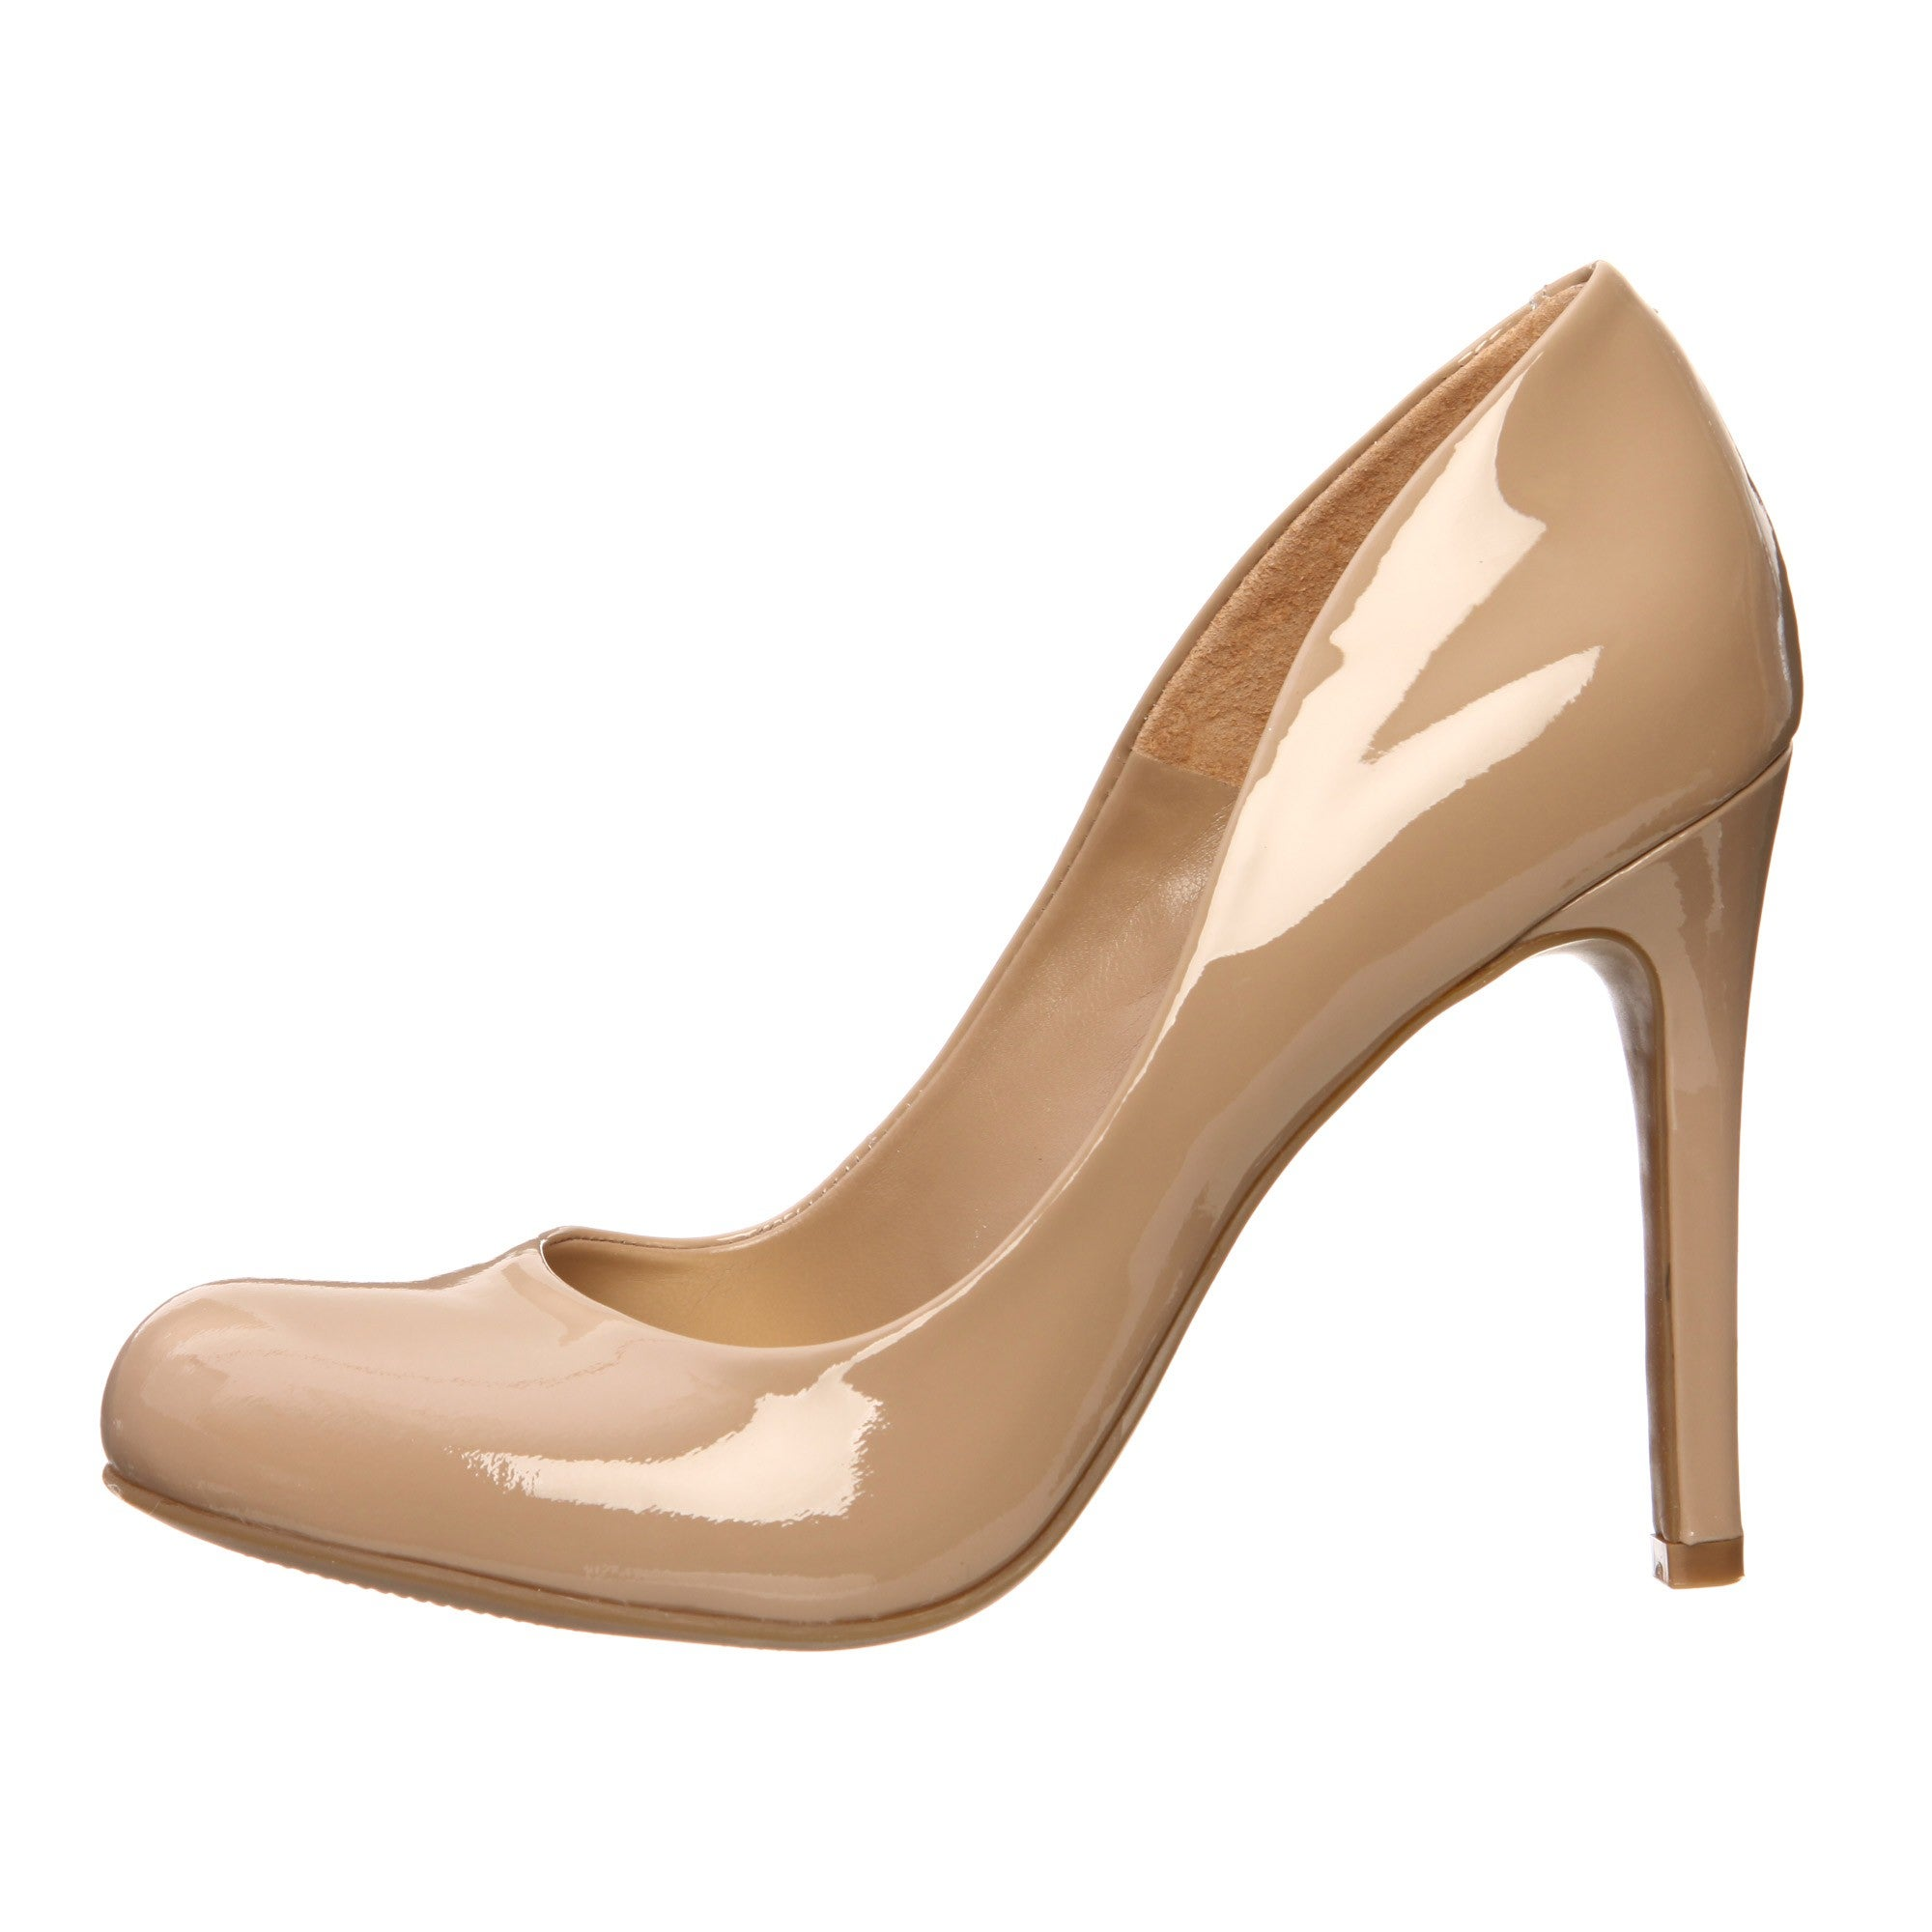 b608574316e7 Shop Jessica Simpson Women s  Calie  Pumps - Free Shipping Today -  Overstock - 6428519